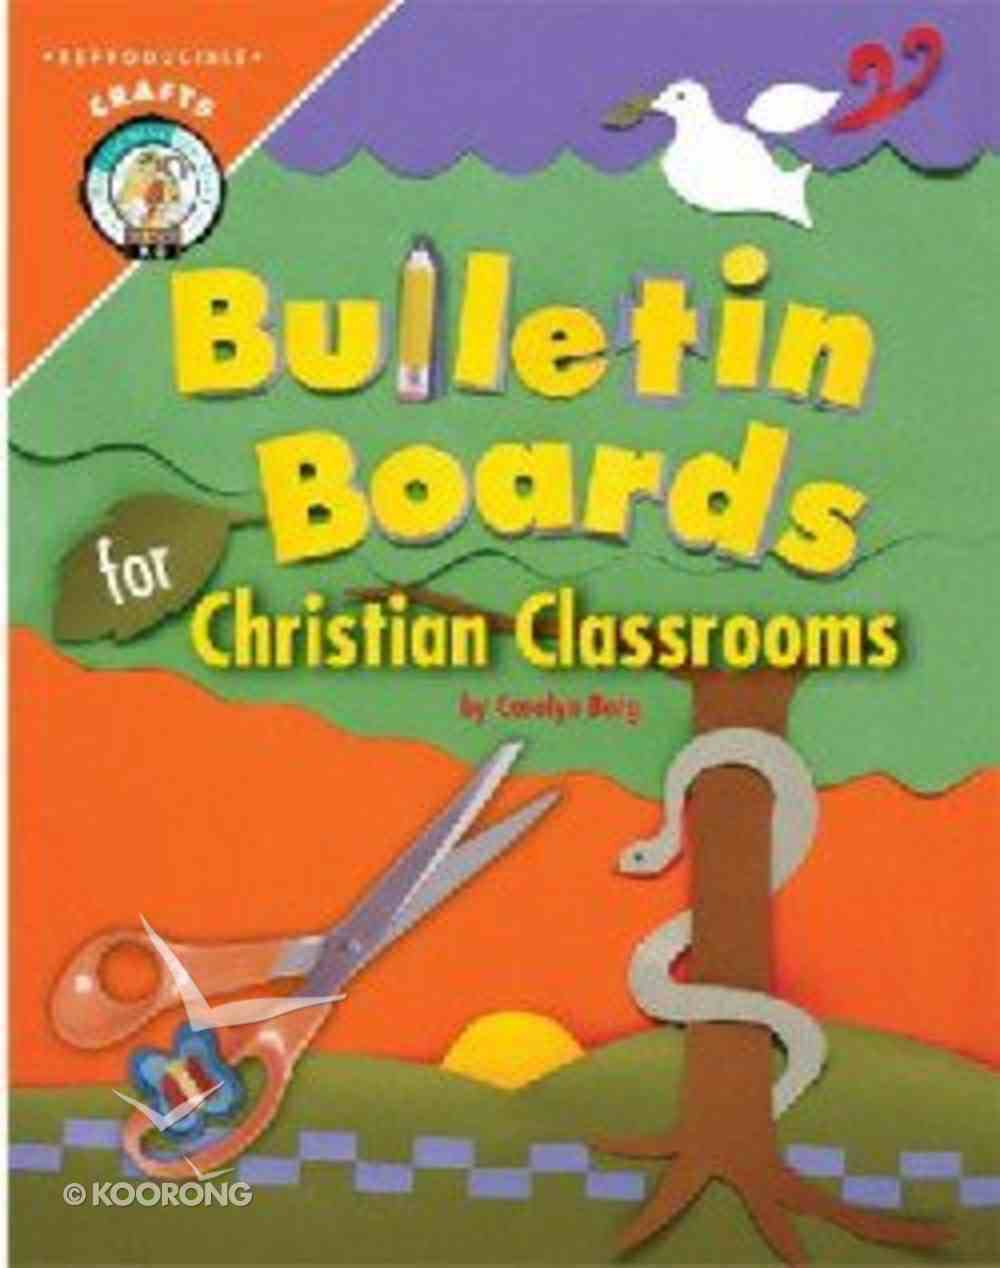 Bulletin Boards For Christian Classrooms Paperback